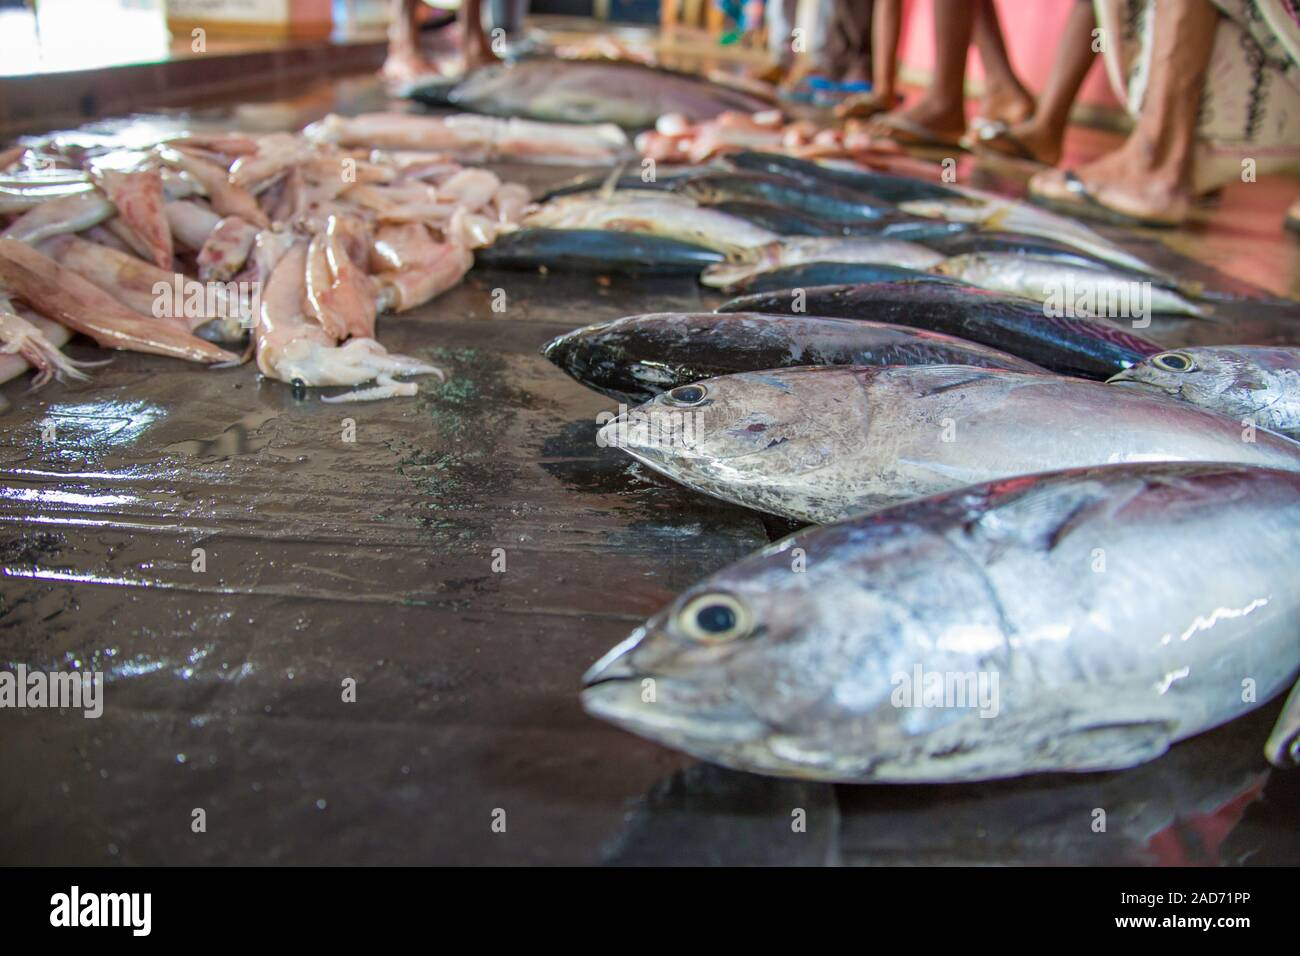 Fish and squid for sale in an outdoor market, Central Province, Sri Lanka. Stock Photo